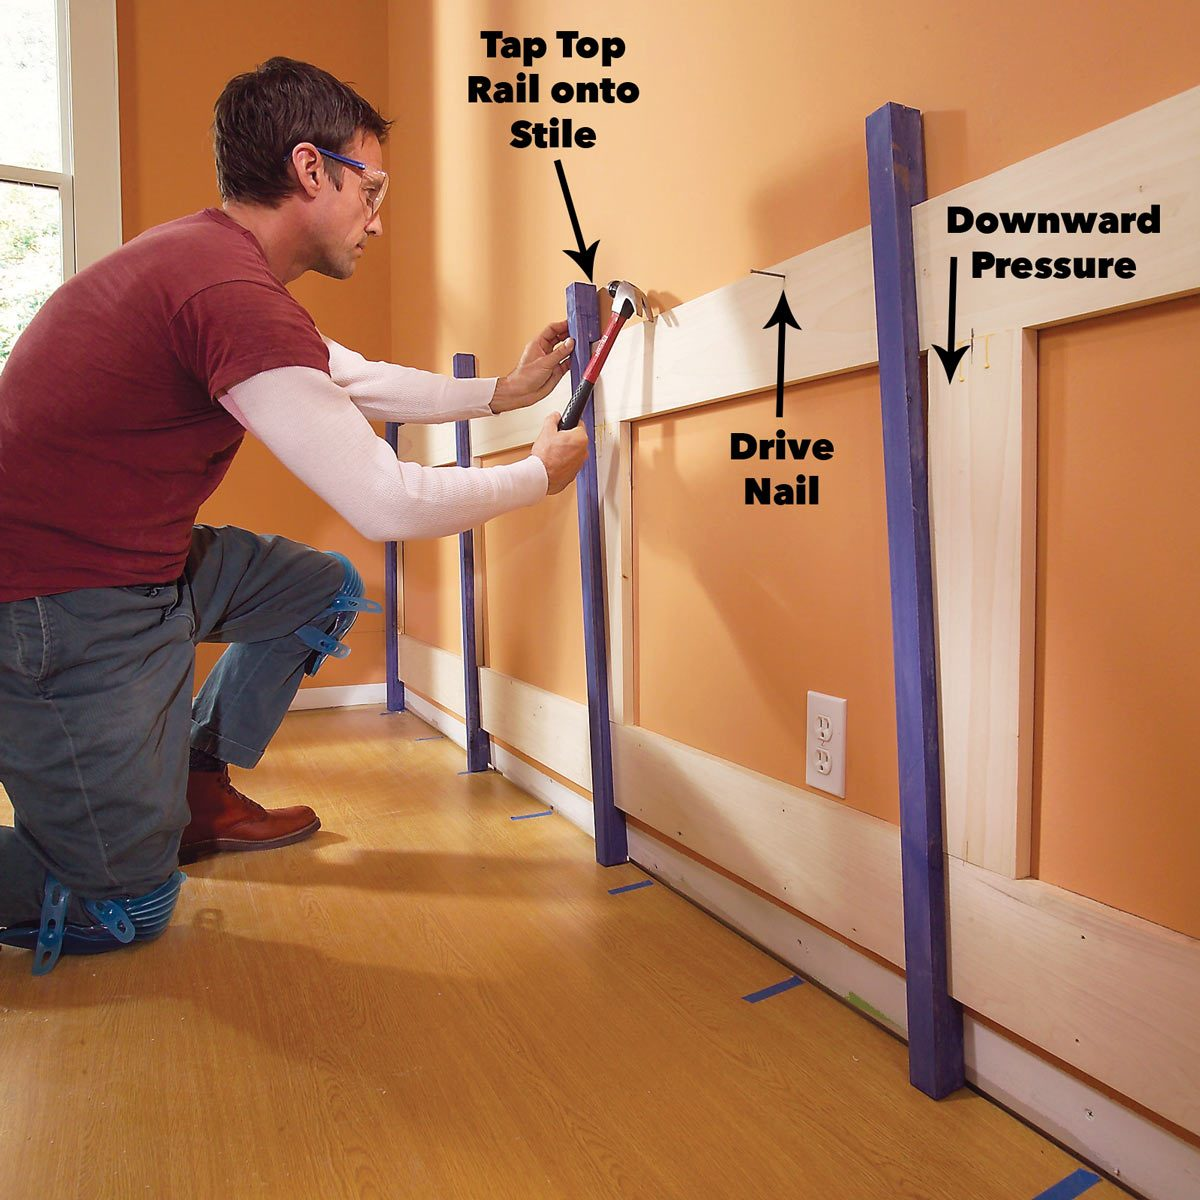 clamp rails and stiles together wood wainscoting panels